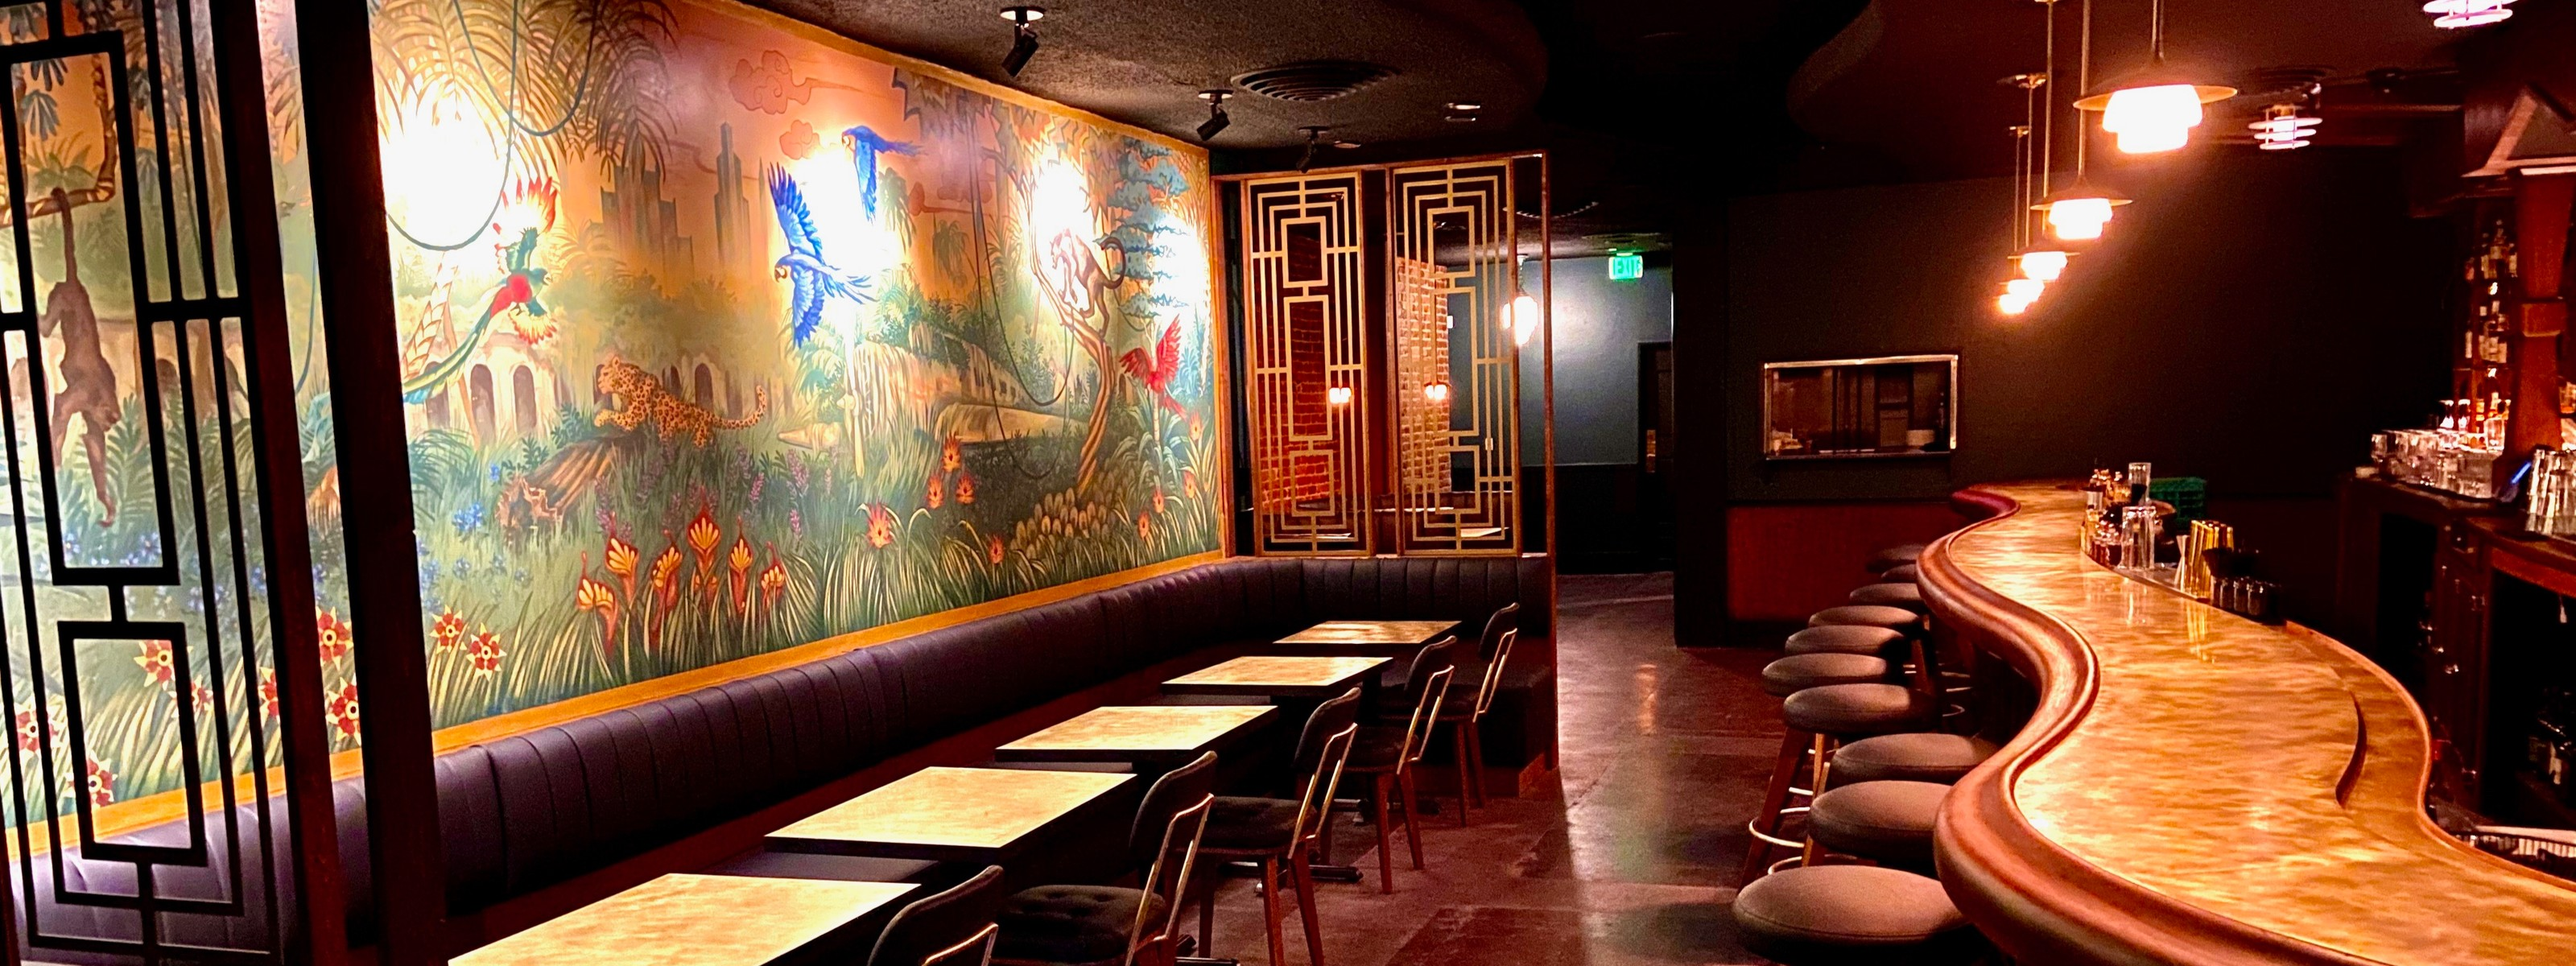 The Airliner - Lincoln Heights - Los Angeles - The Infatuation